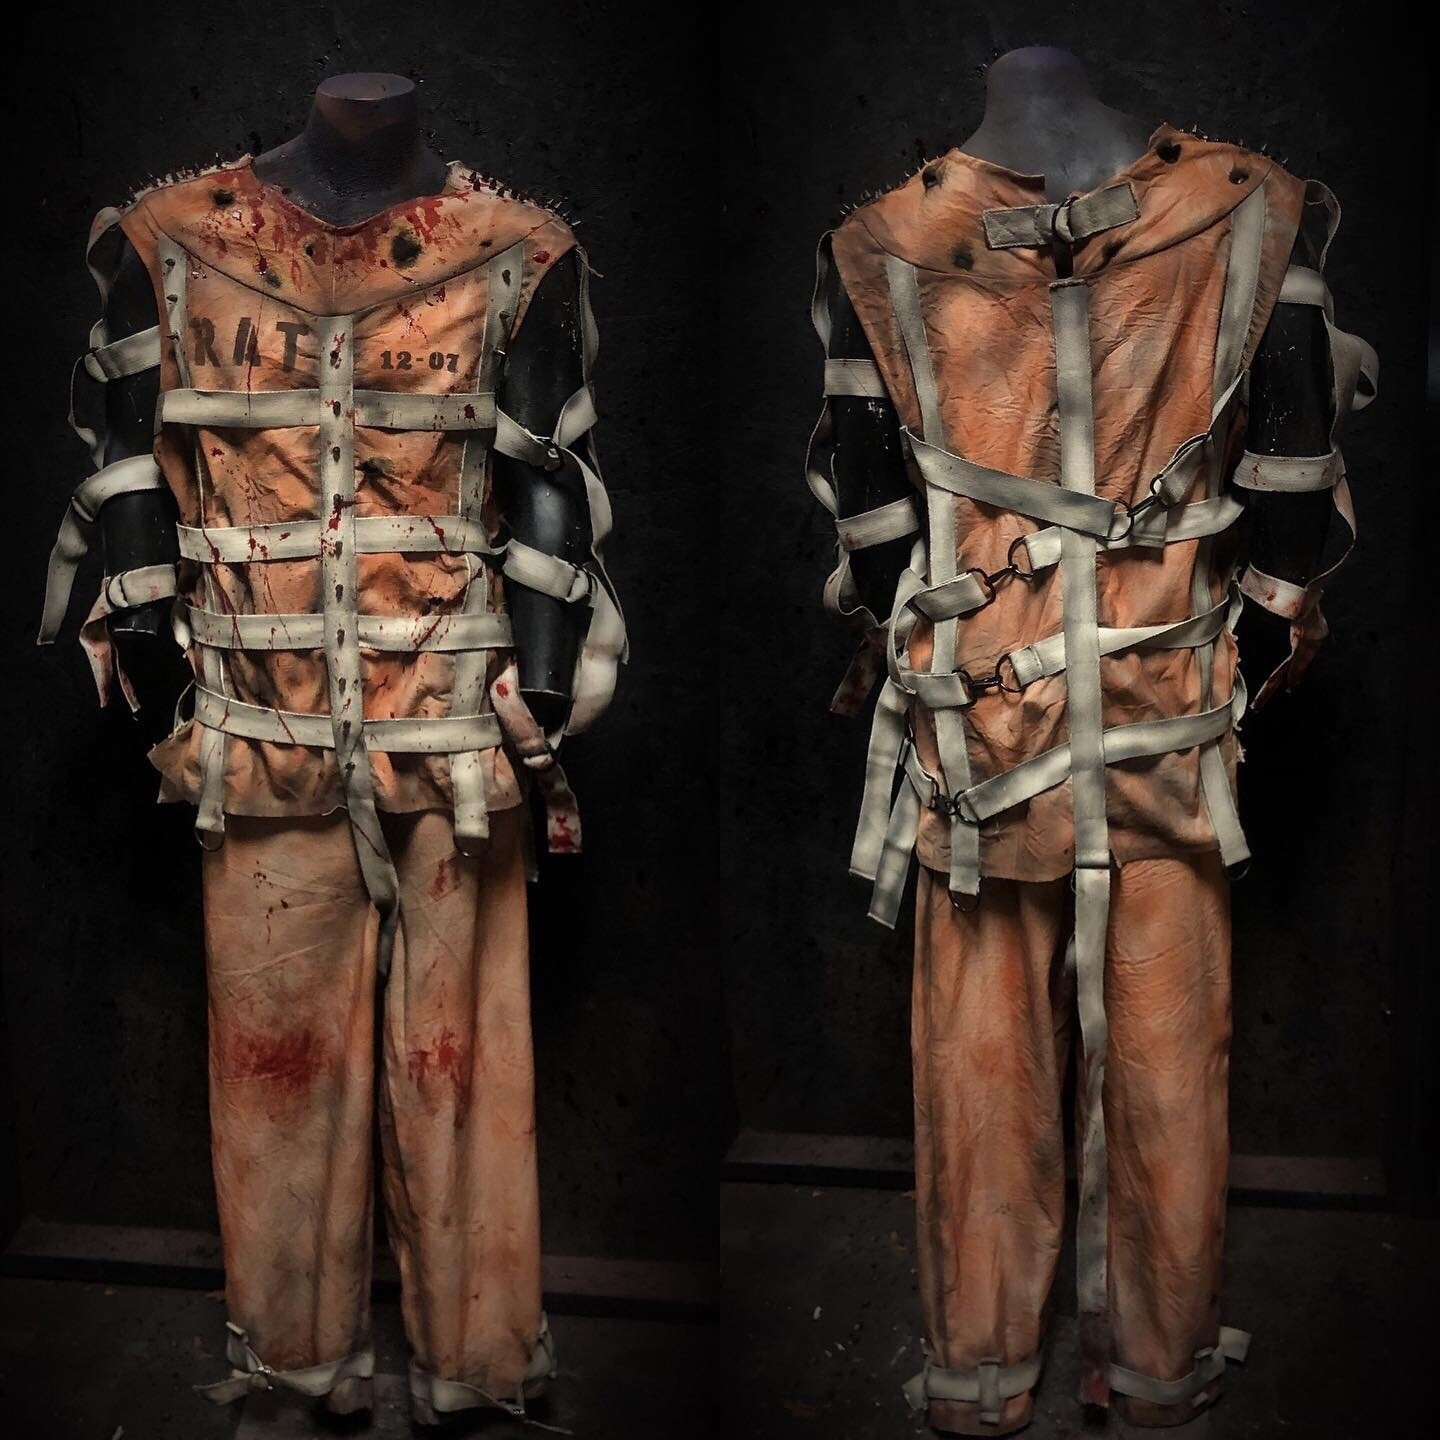 Restraint Vest With Spikes